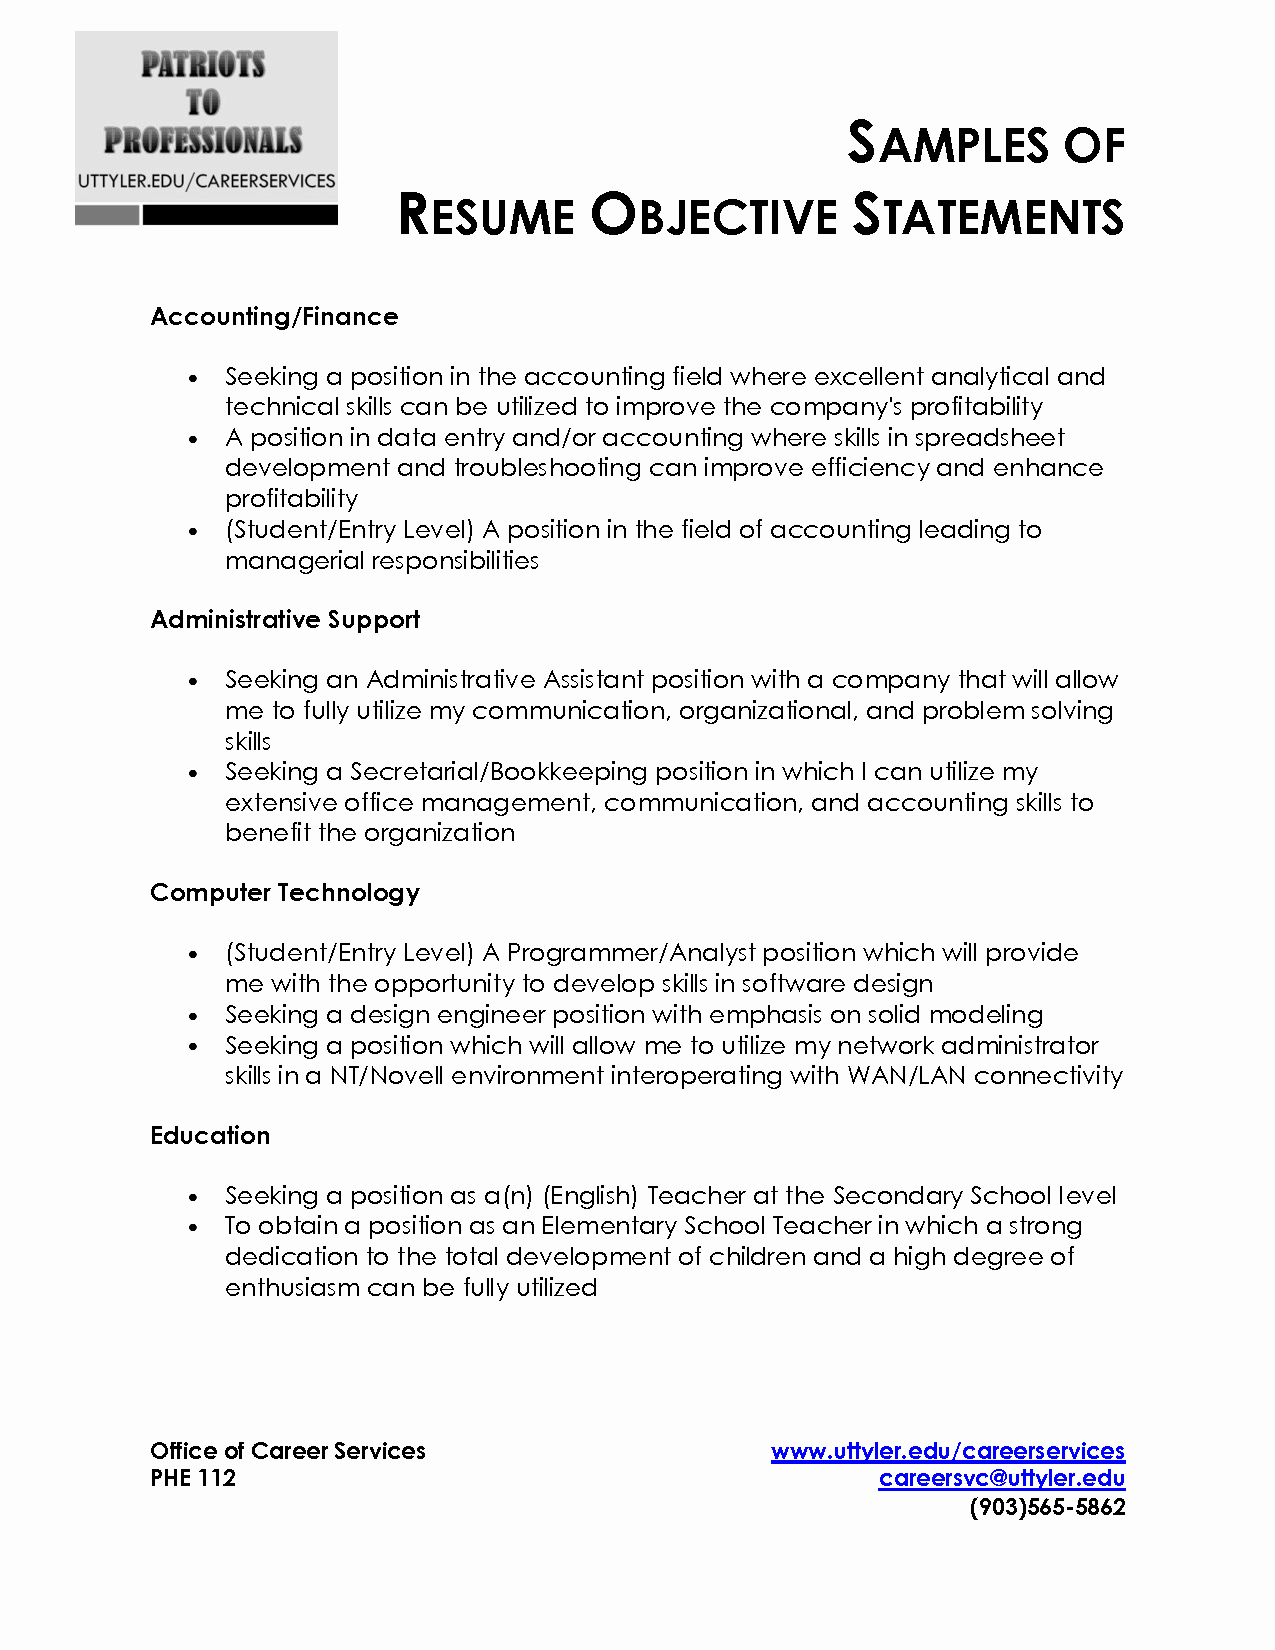 General Objective Statement for Resume Resume Ideas